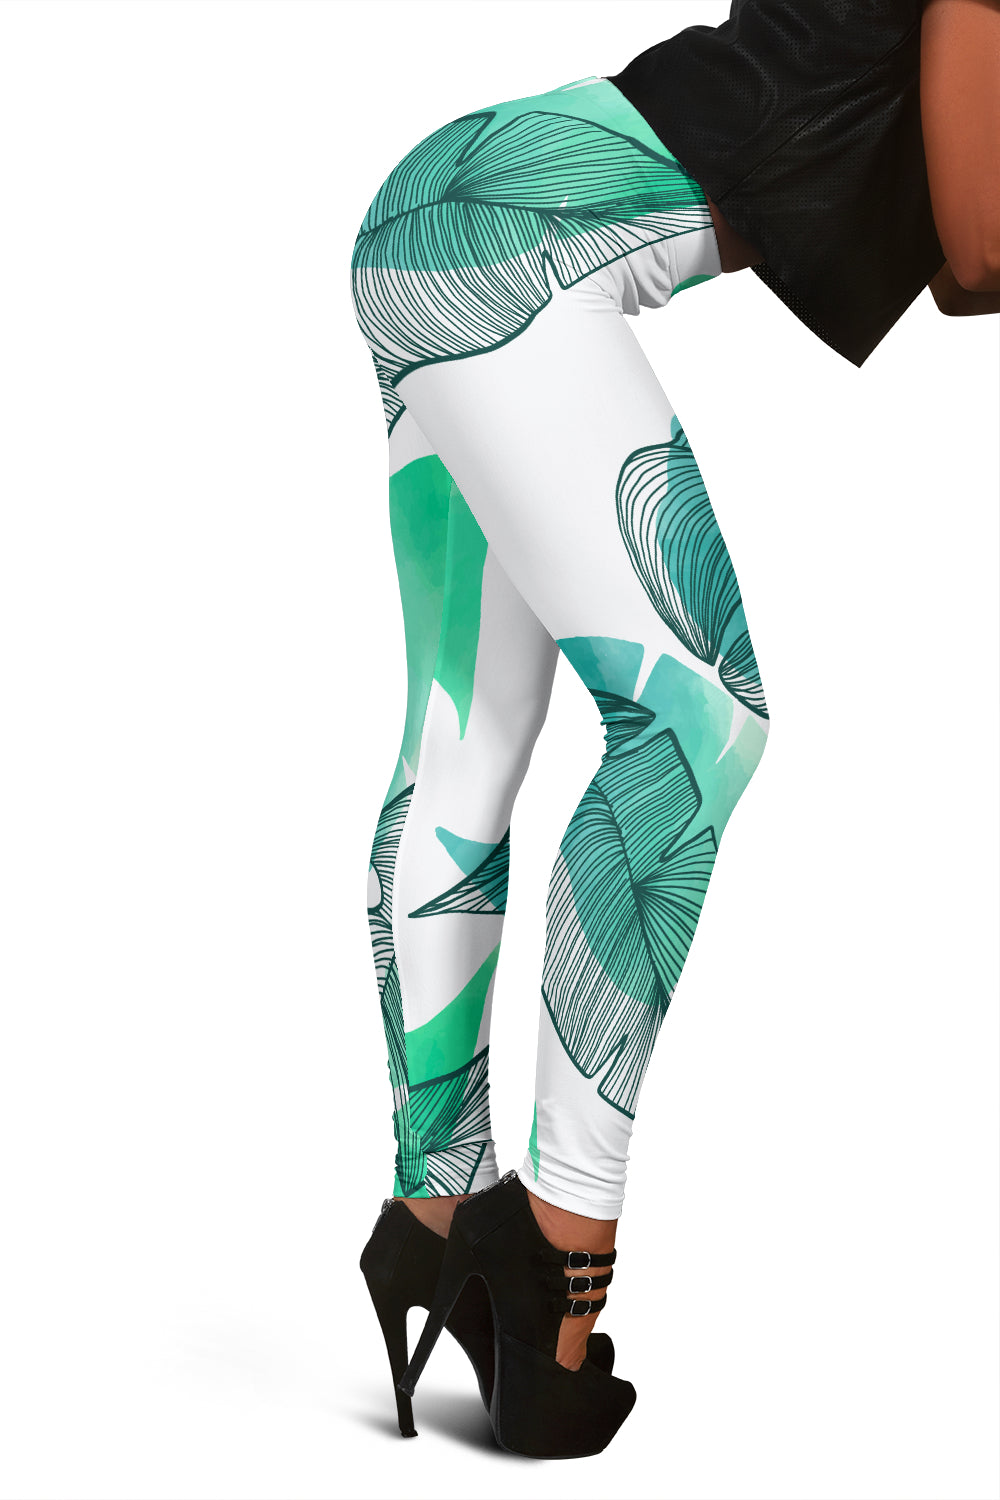 Women's Hand Drawn Leaves Leggings - Joy's Beauty Store